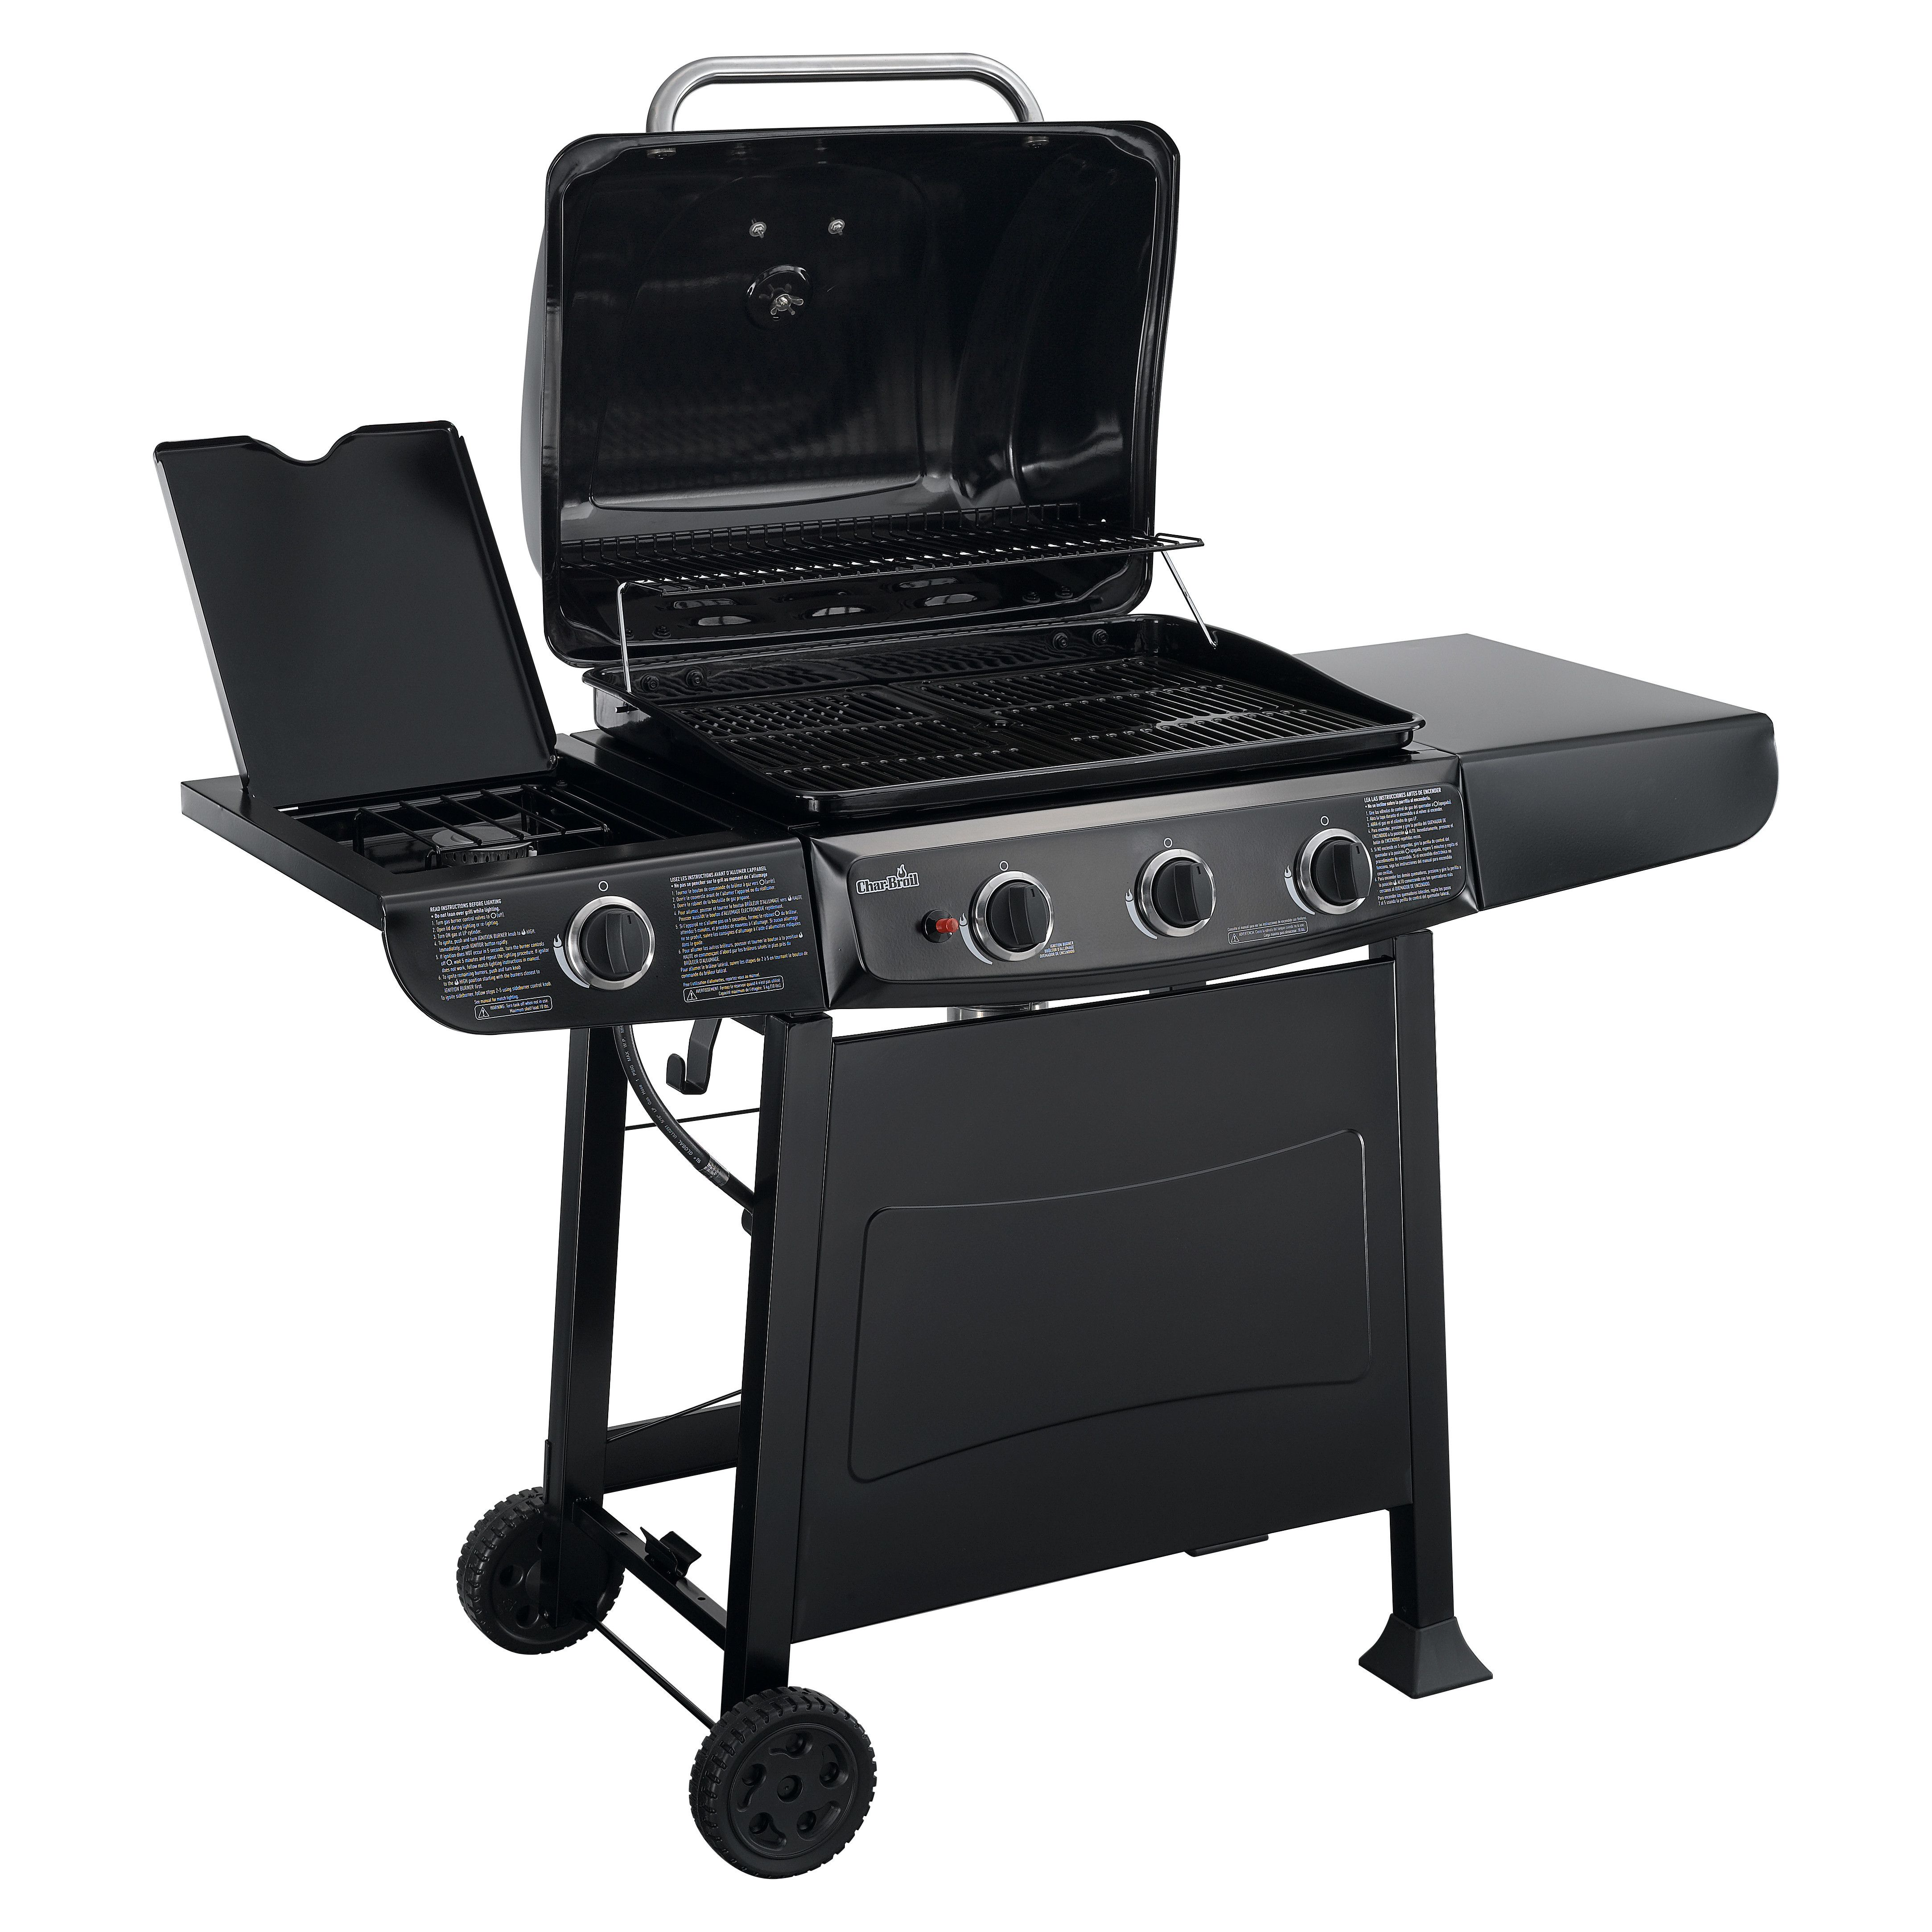 Char Broil Gas Grill with Side Burner Patio Pinterest